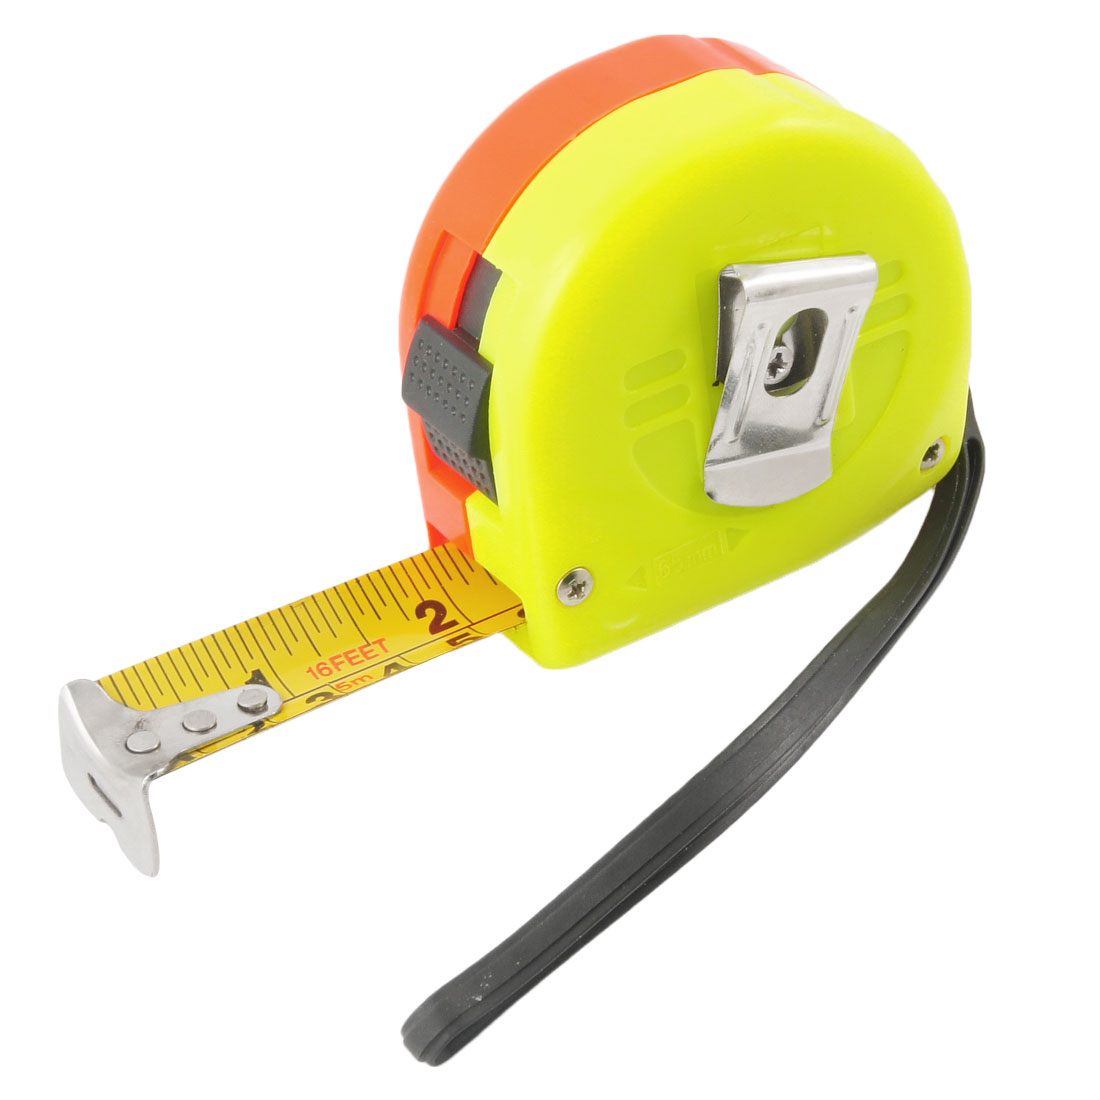 Yellow Red Plastic Self Retractable Locking Ruler Tape 16Ft 5M w Strap